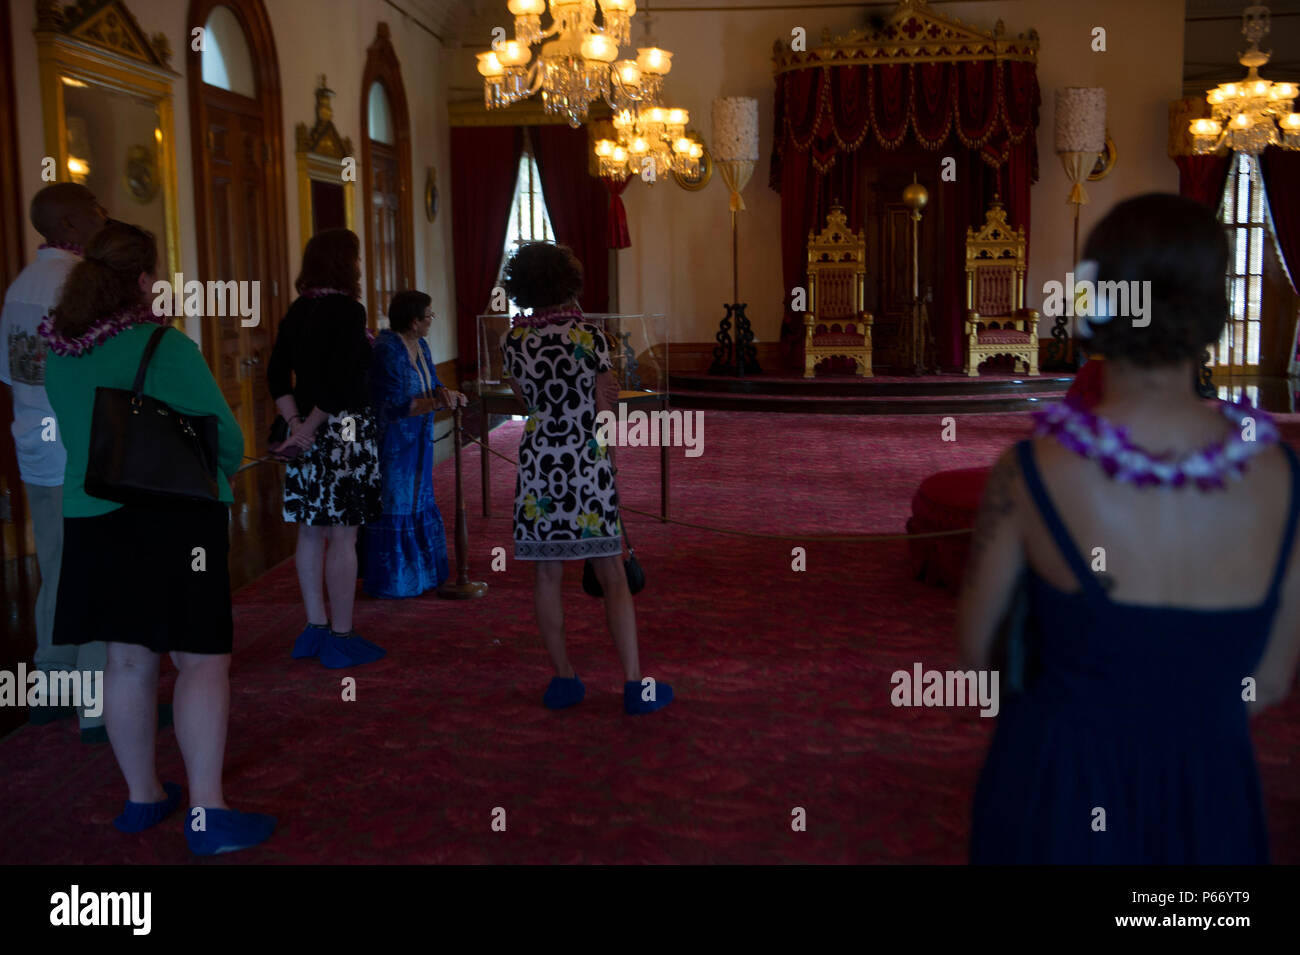 Military Spouses Observe The Thrones Of King And Queen During Spouse Appreciation Day Jpg